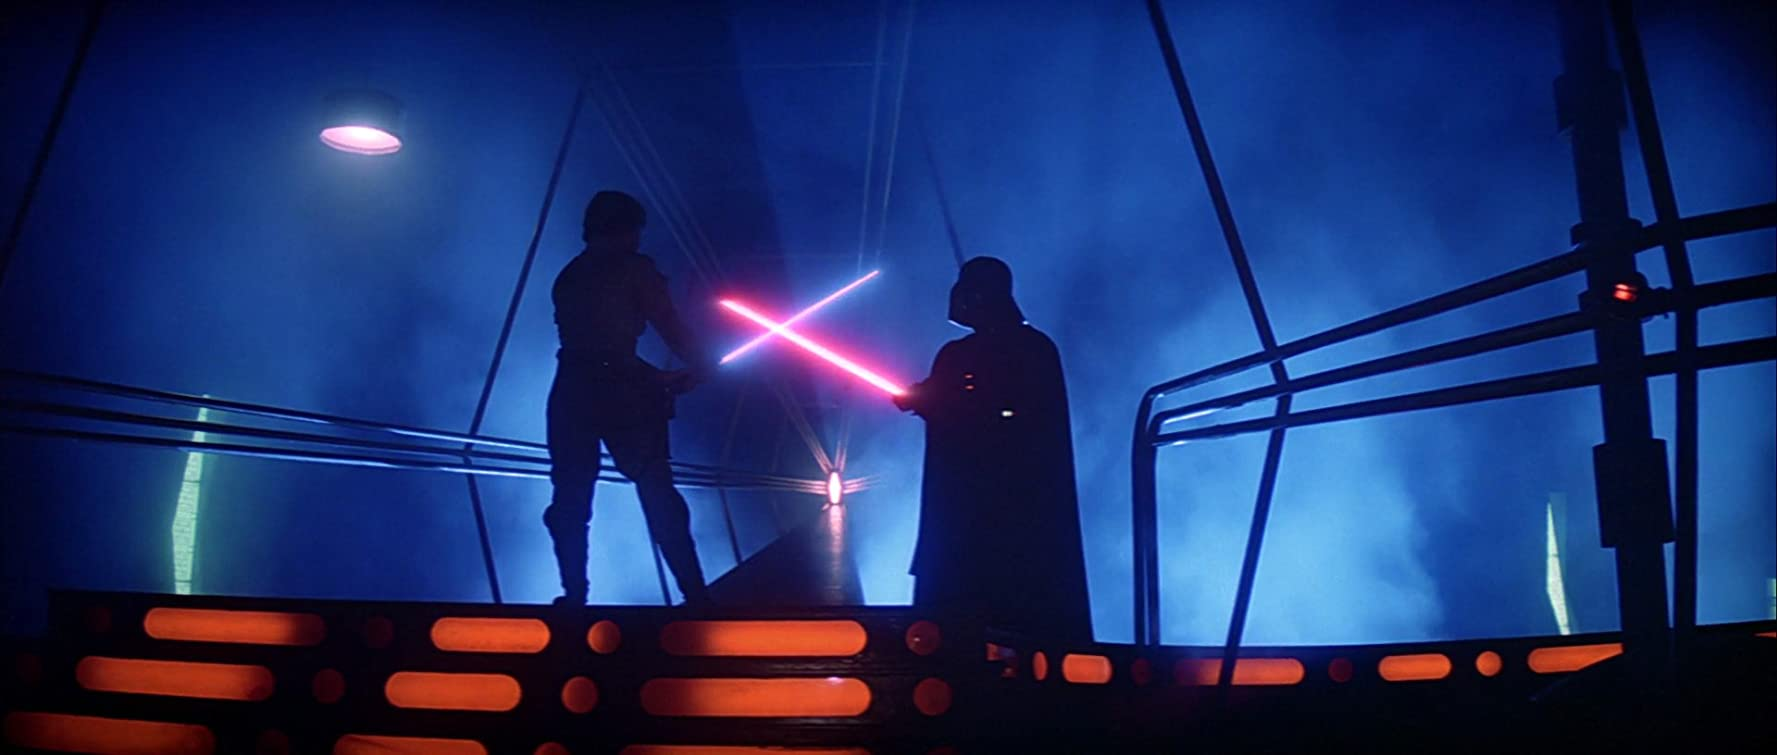 Mark Hamill and David Prowse in Star Wars: Episode V - The Empire Strikes Back (1980)